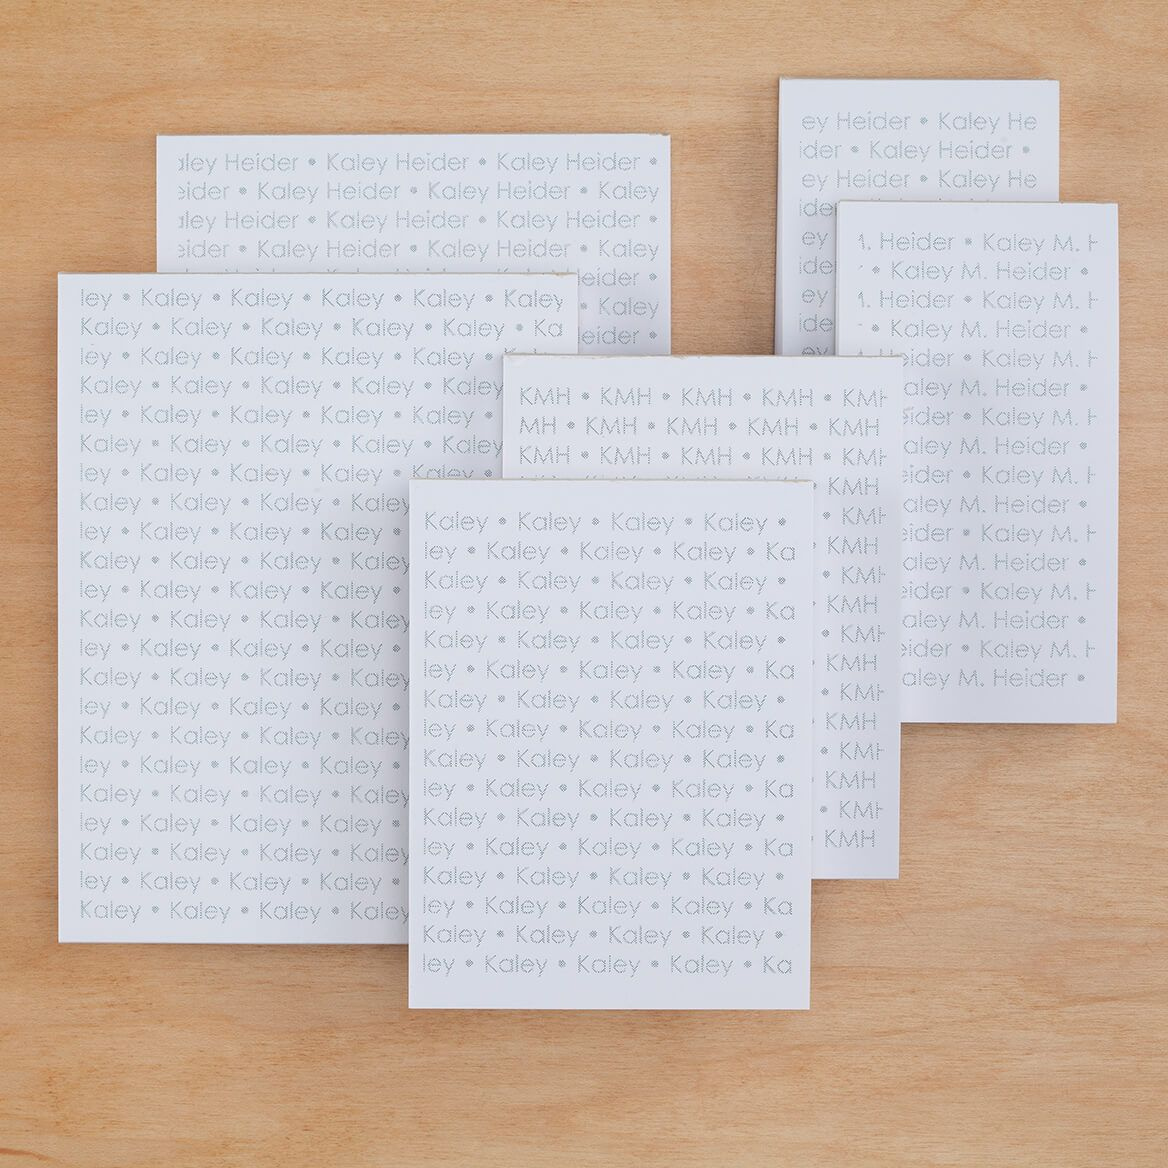 Personalized Repeating Name Notepads Refill Set of 6-349467